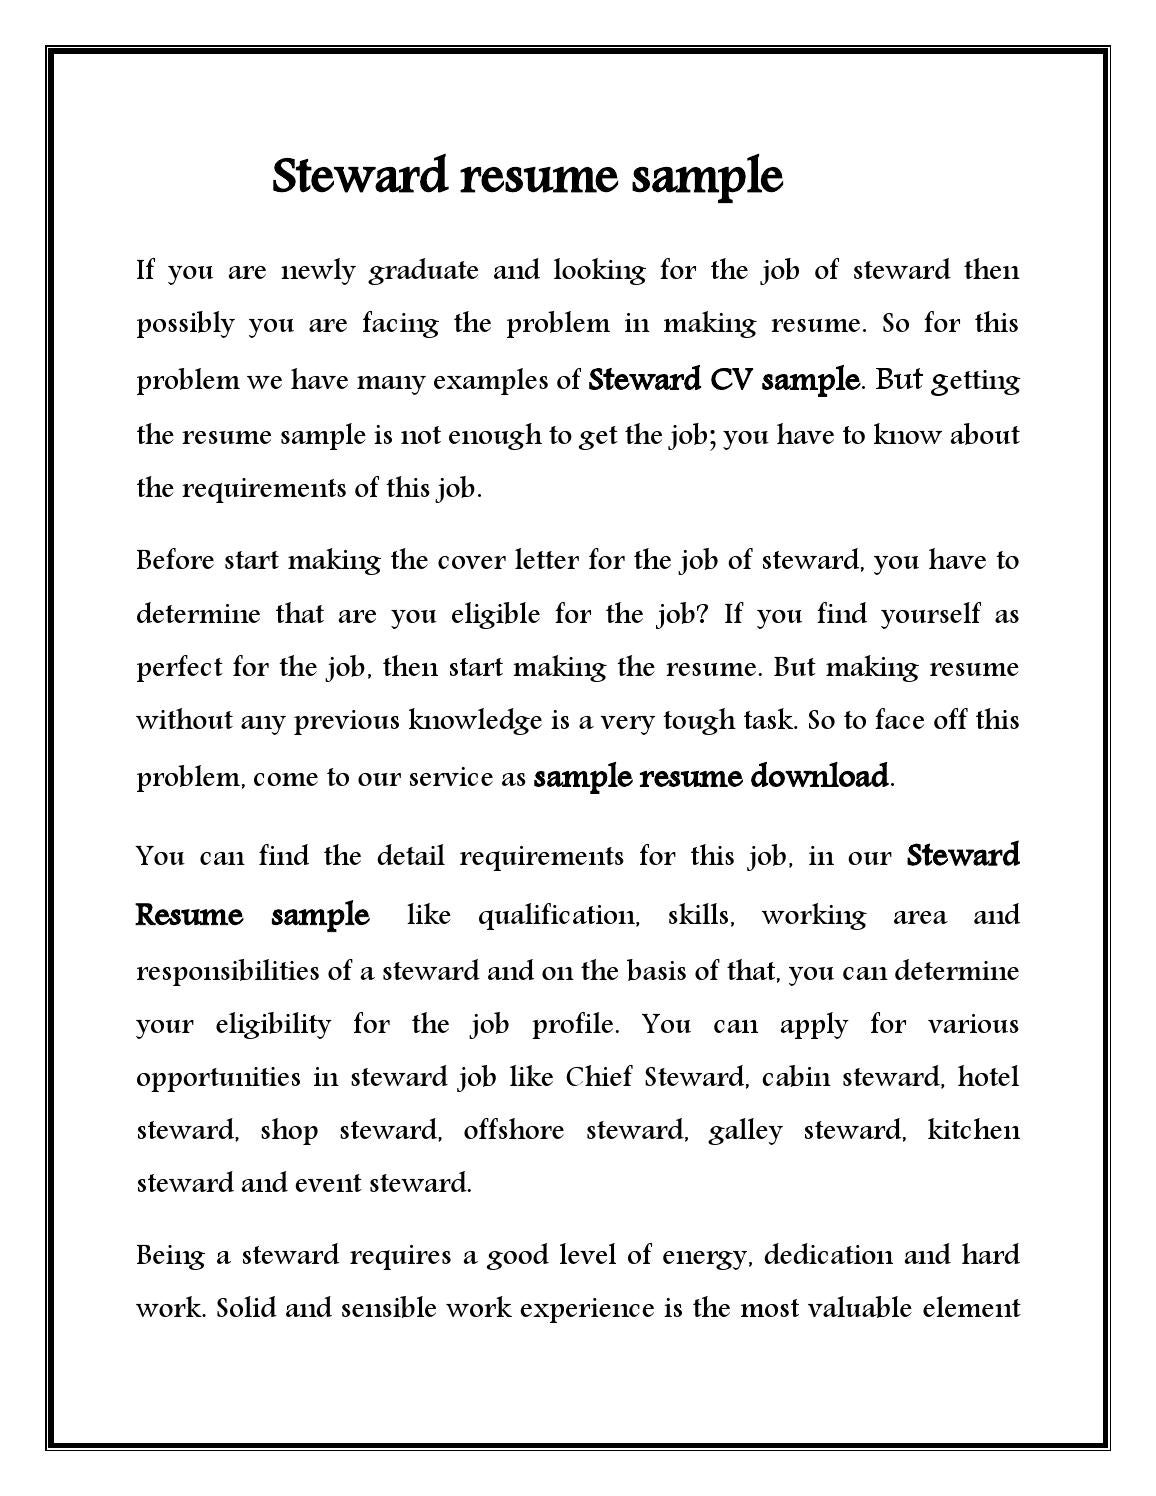 Steward cv sample for hotel stewerd job by ...